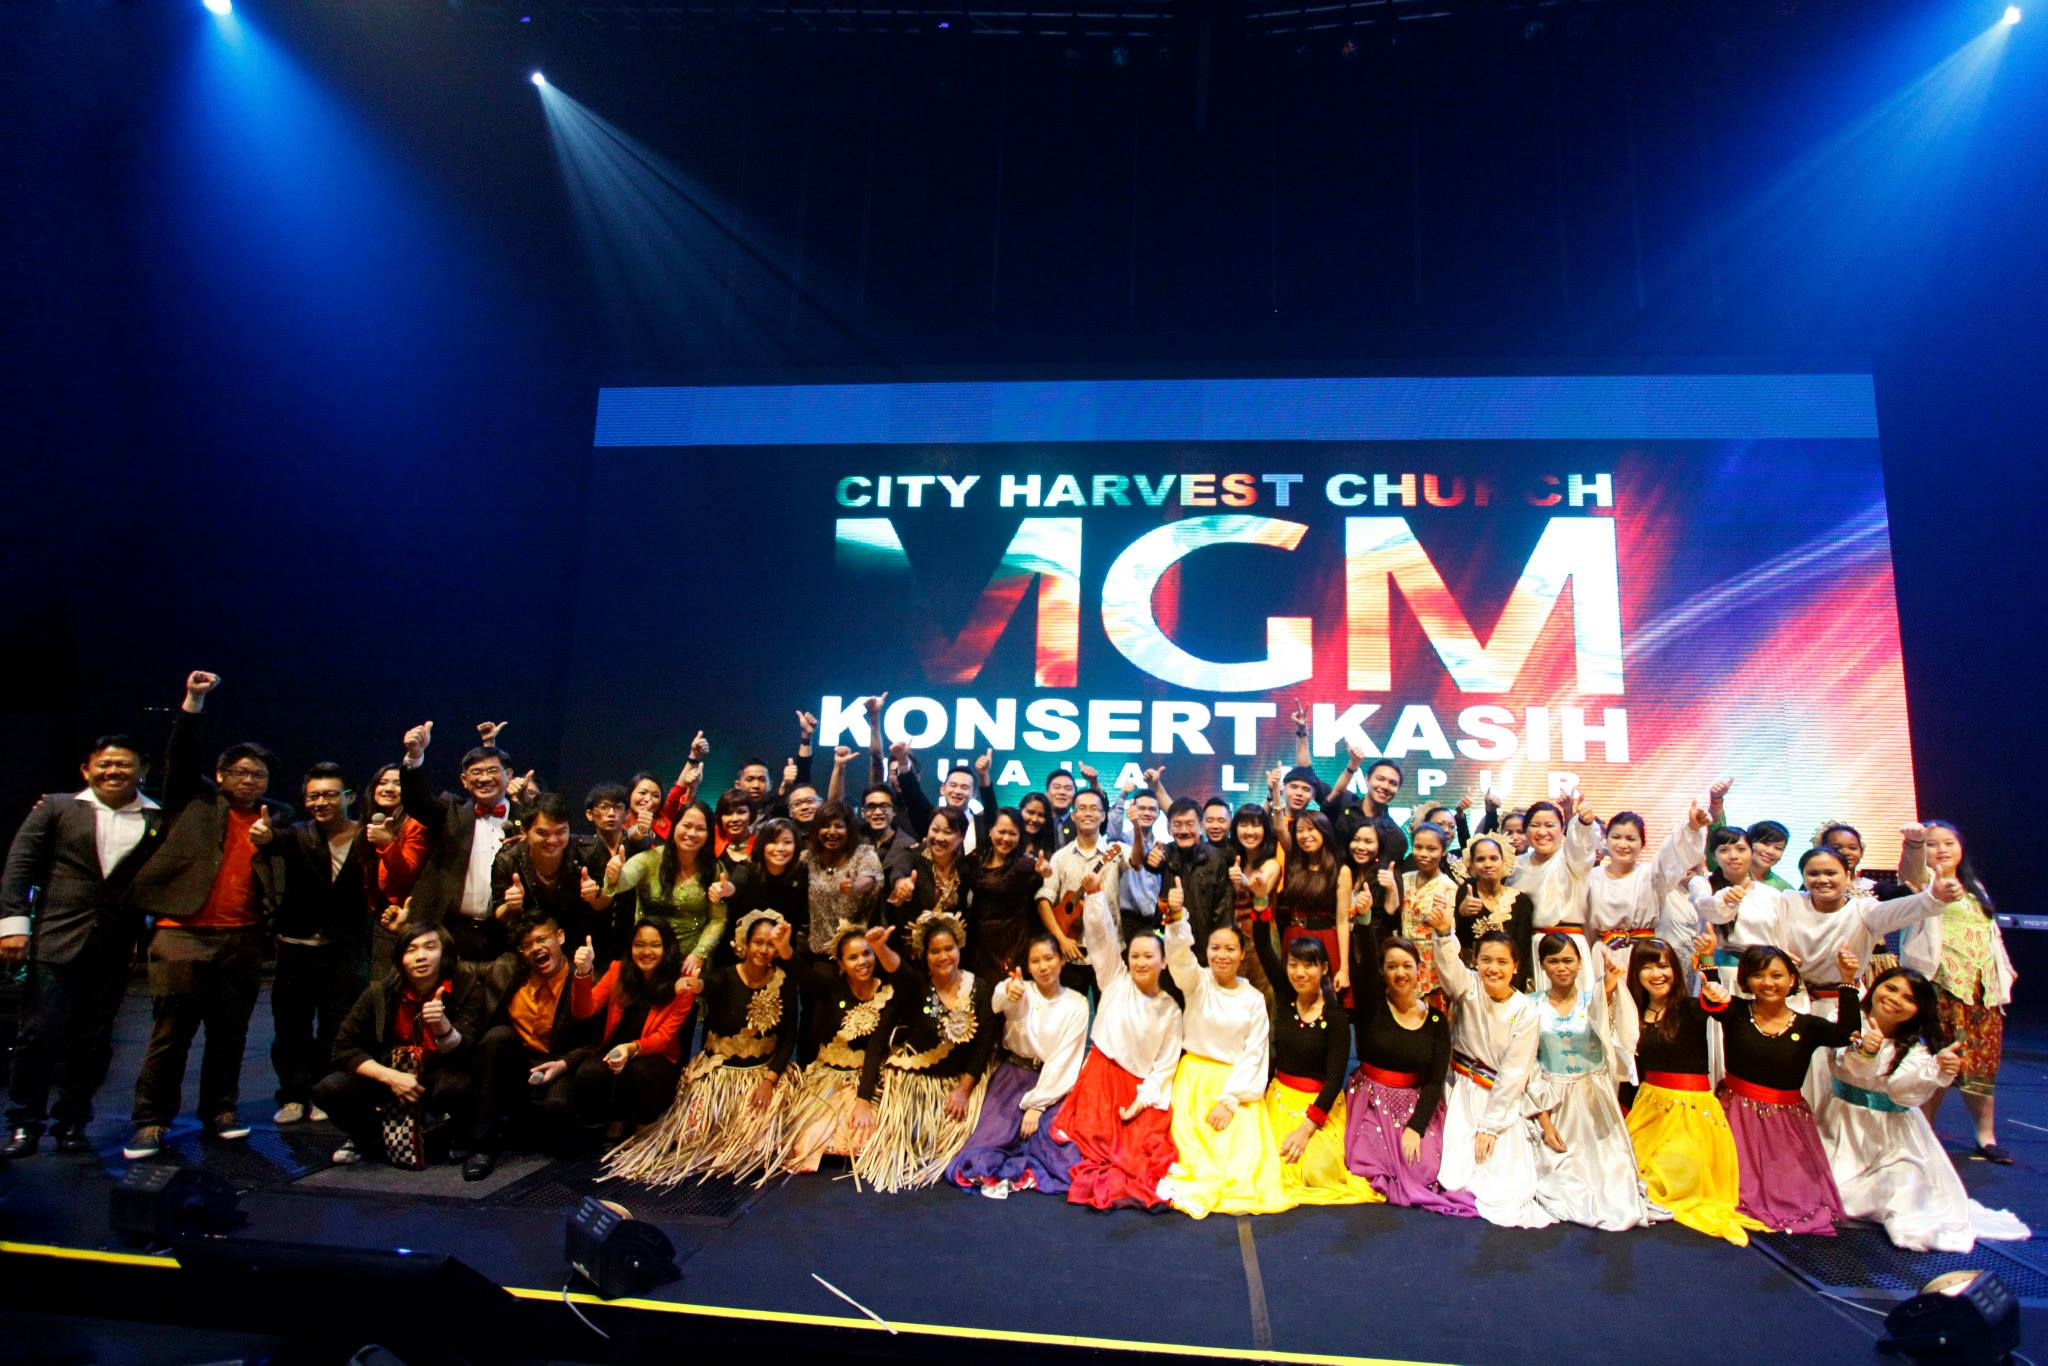 KL concert 2013 Group Photo